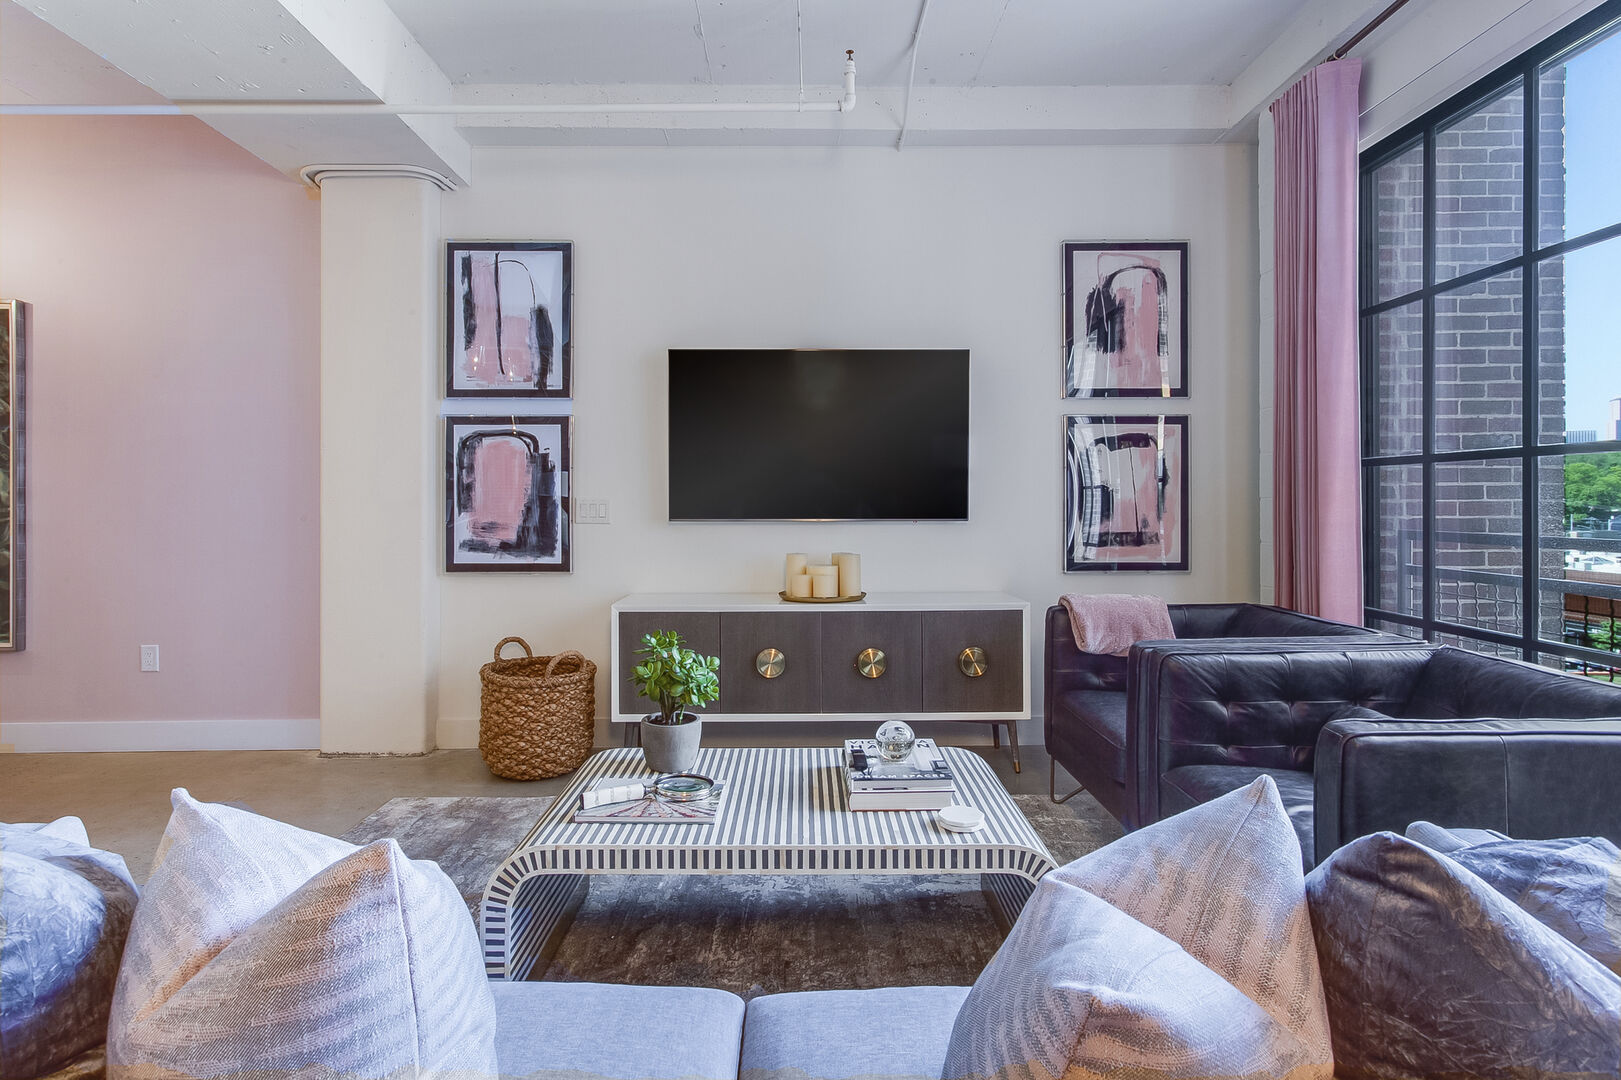 Living Area Includes Large TV and Chic Furnishings.